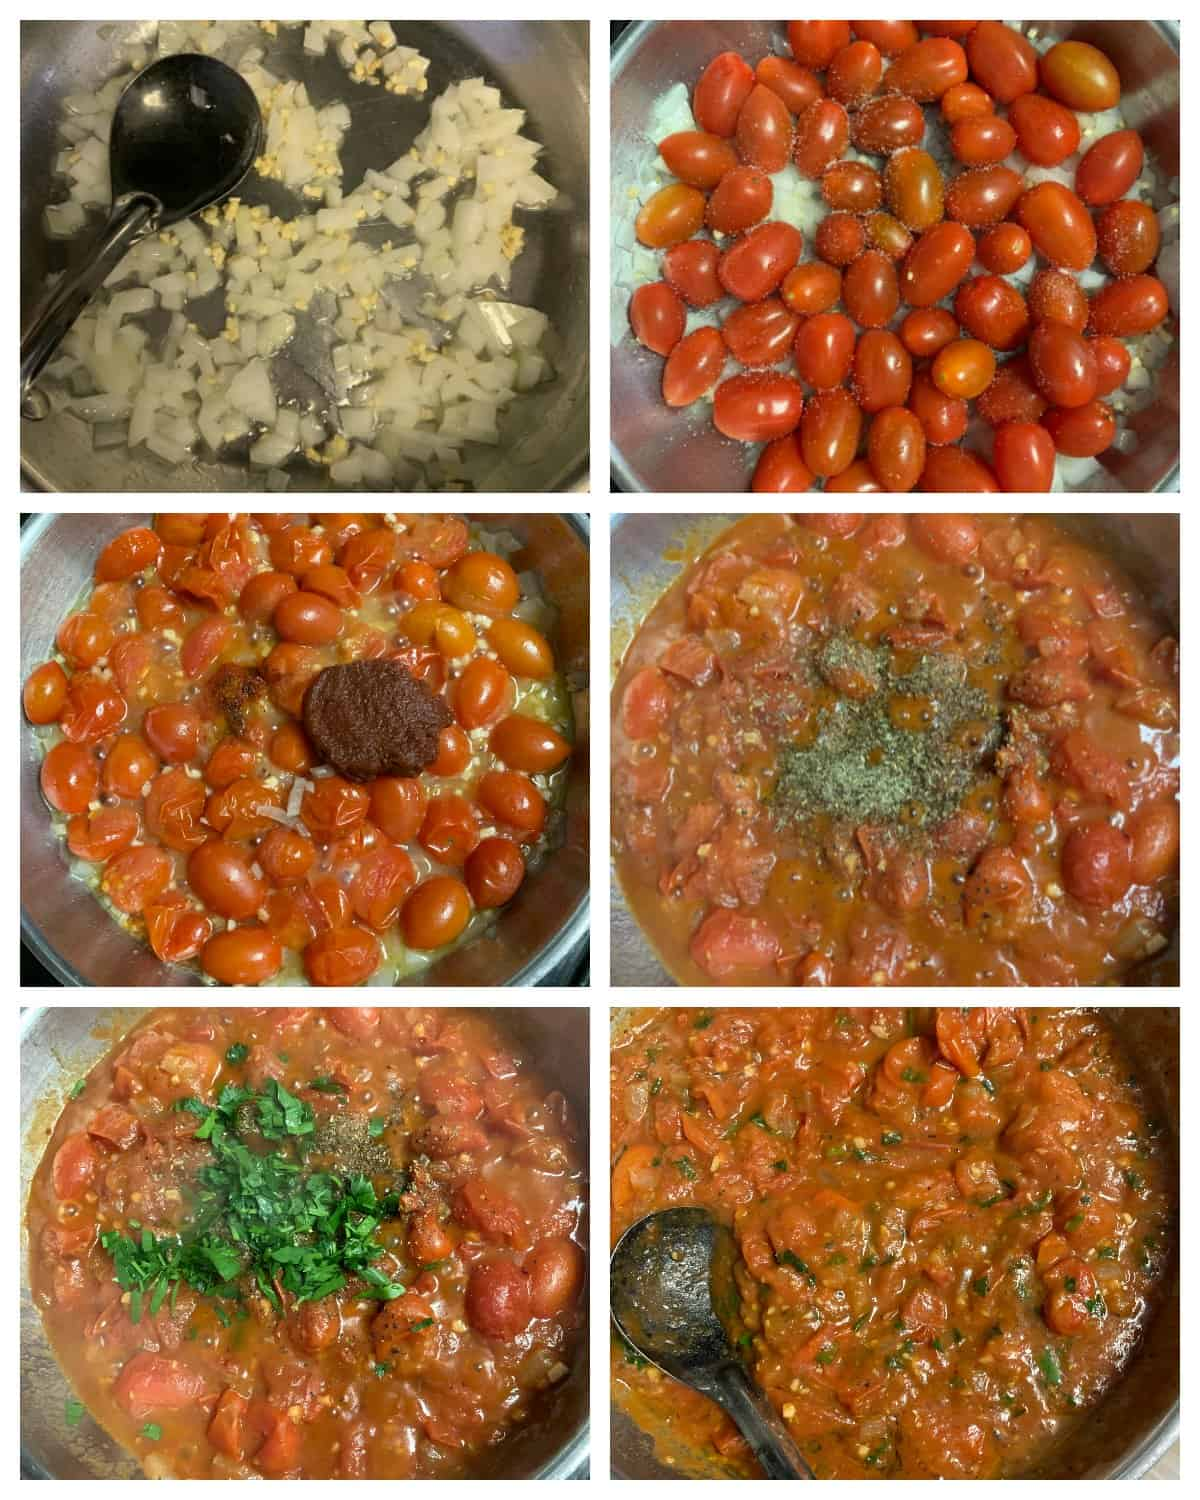 Step by step making of fresh tomato pasta sauce in a pan